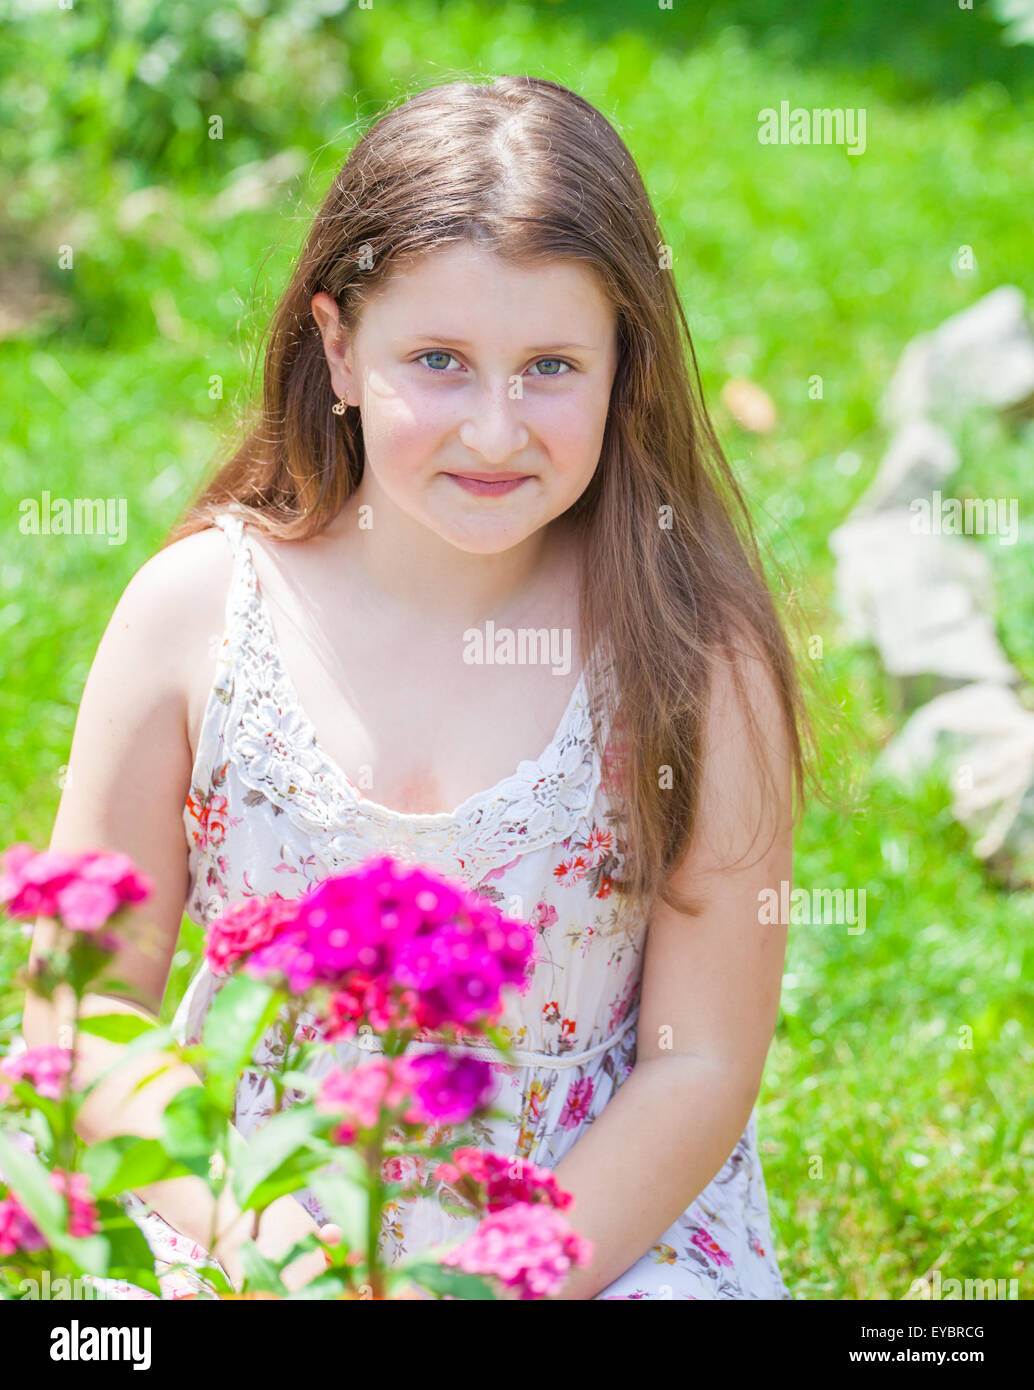 Download 10 year old girl images and photos. Over 2, 10 year old girl pictures to choose from, with no signup needed. Download in under 30 seconds.